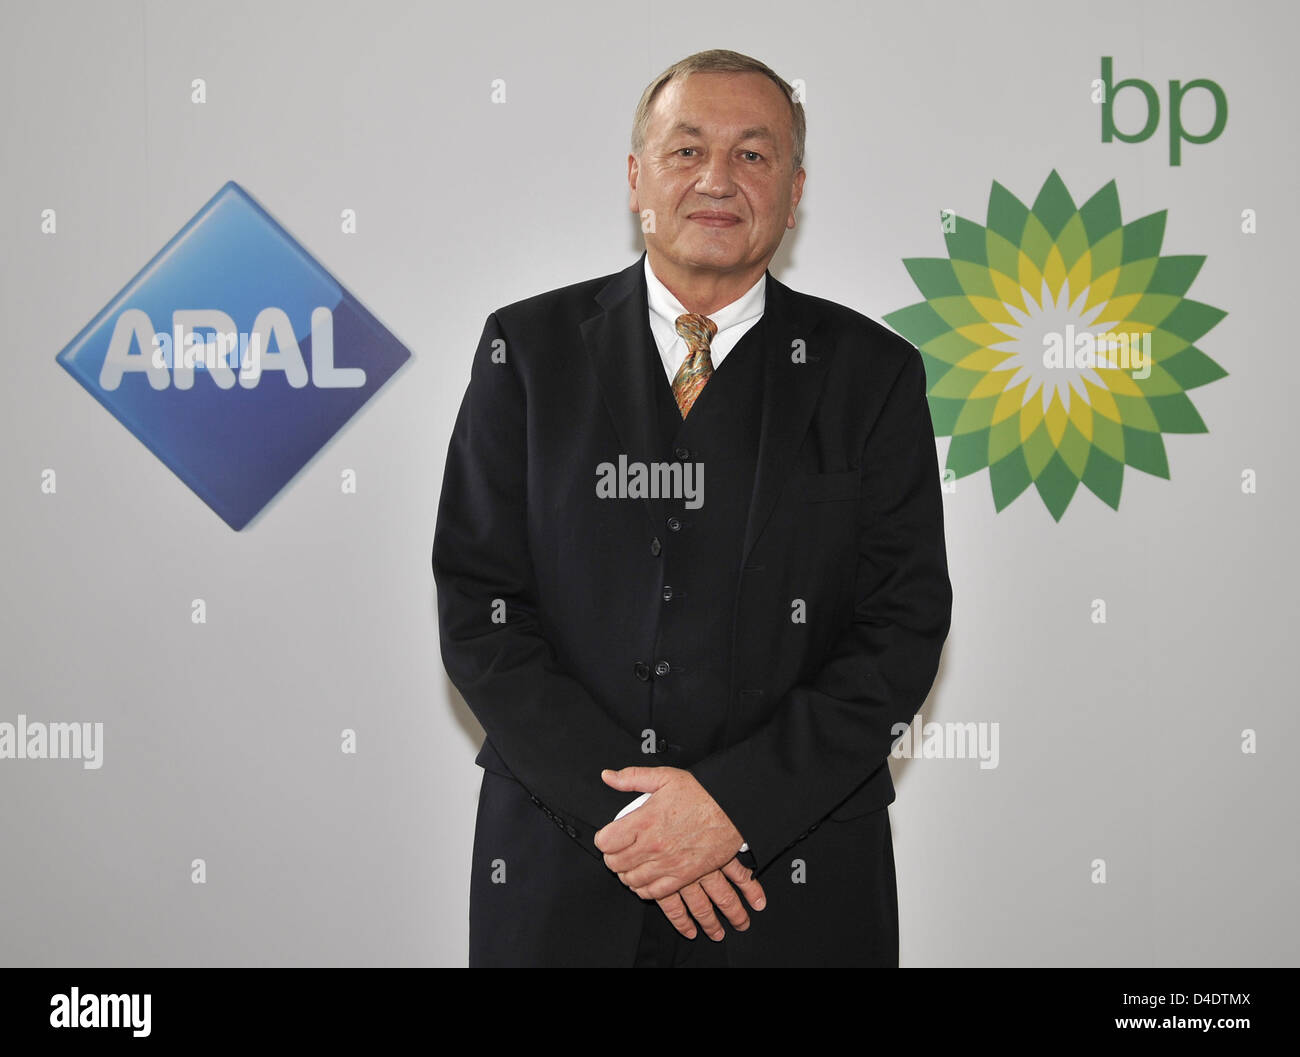 CEO of German BP, Uwe Franke, is pictured with the BP and Aral logos during the annual press conference in Duesseldorf, - Stock Image